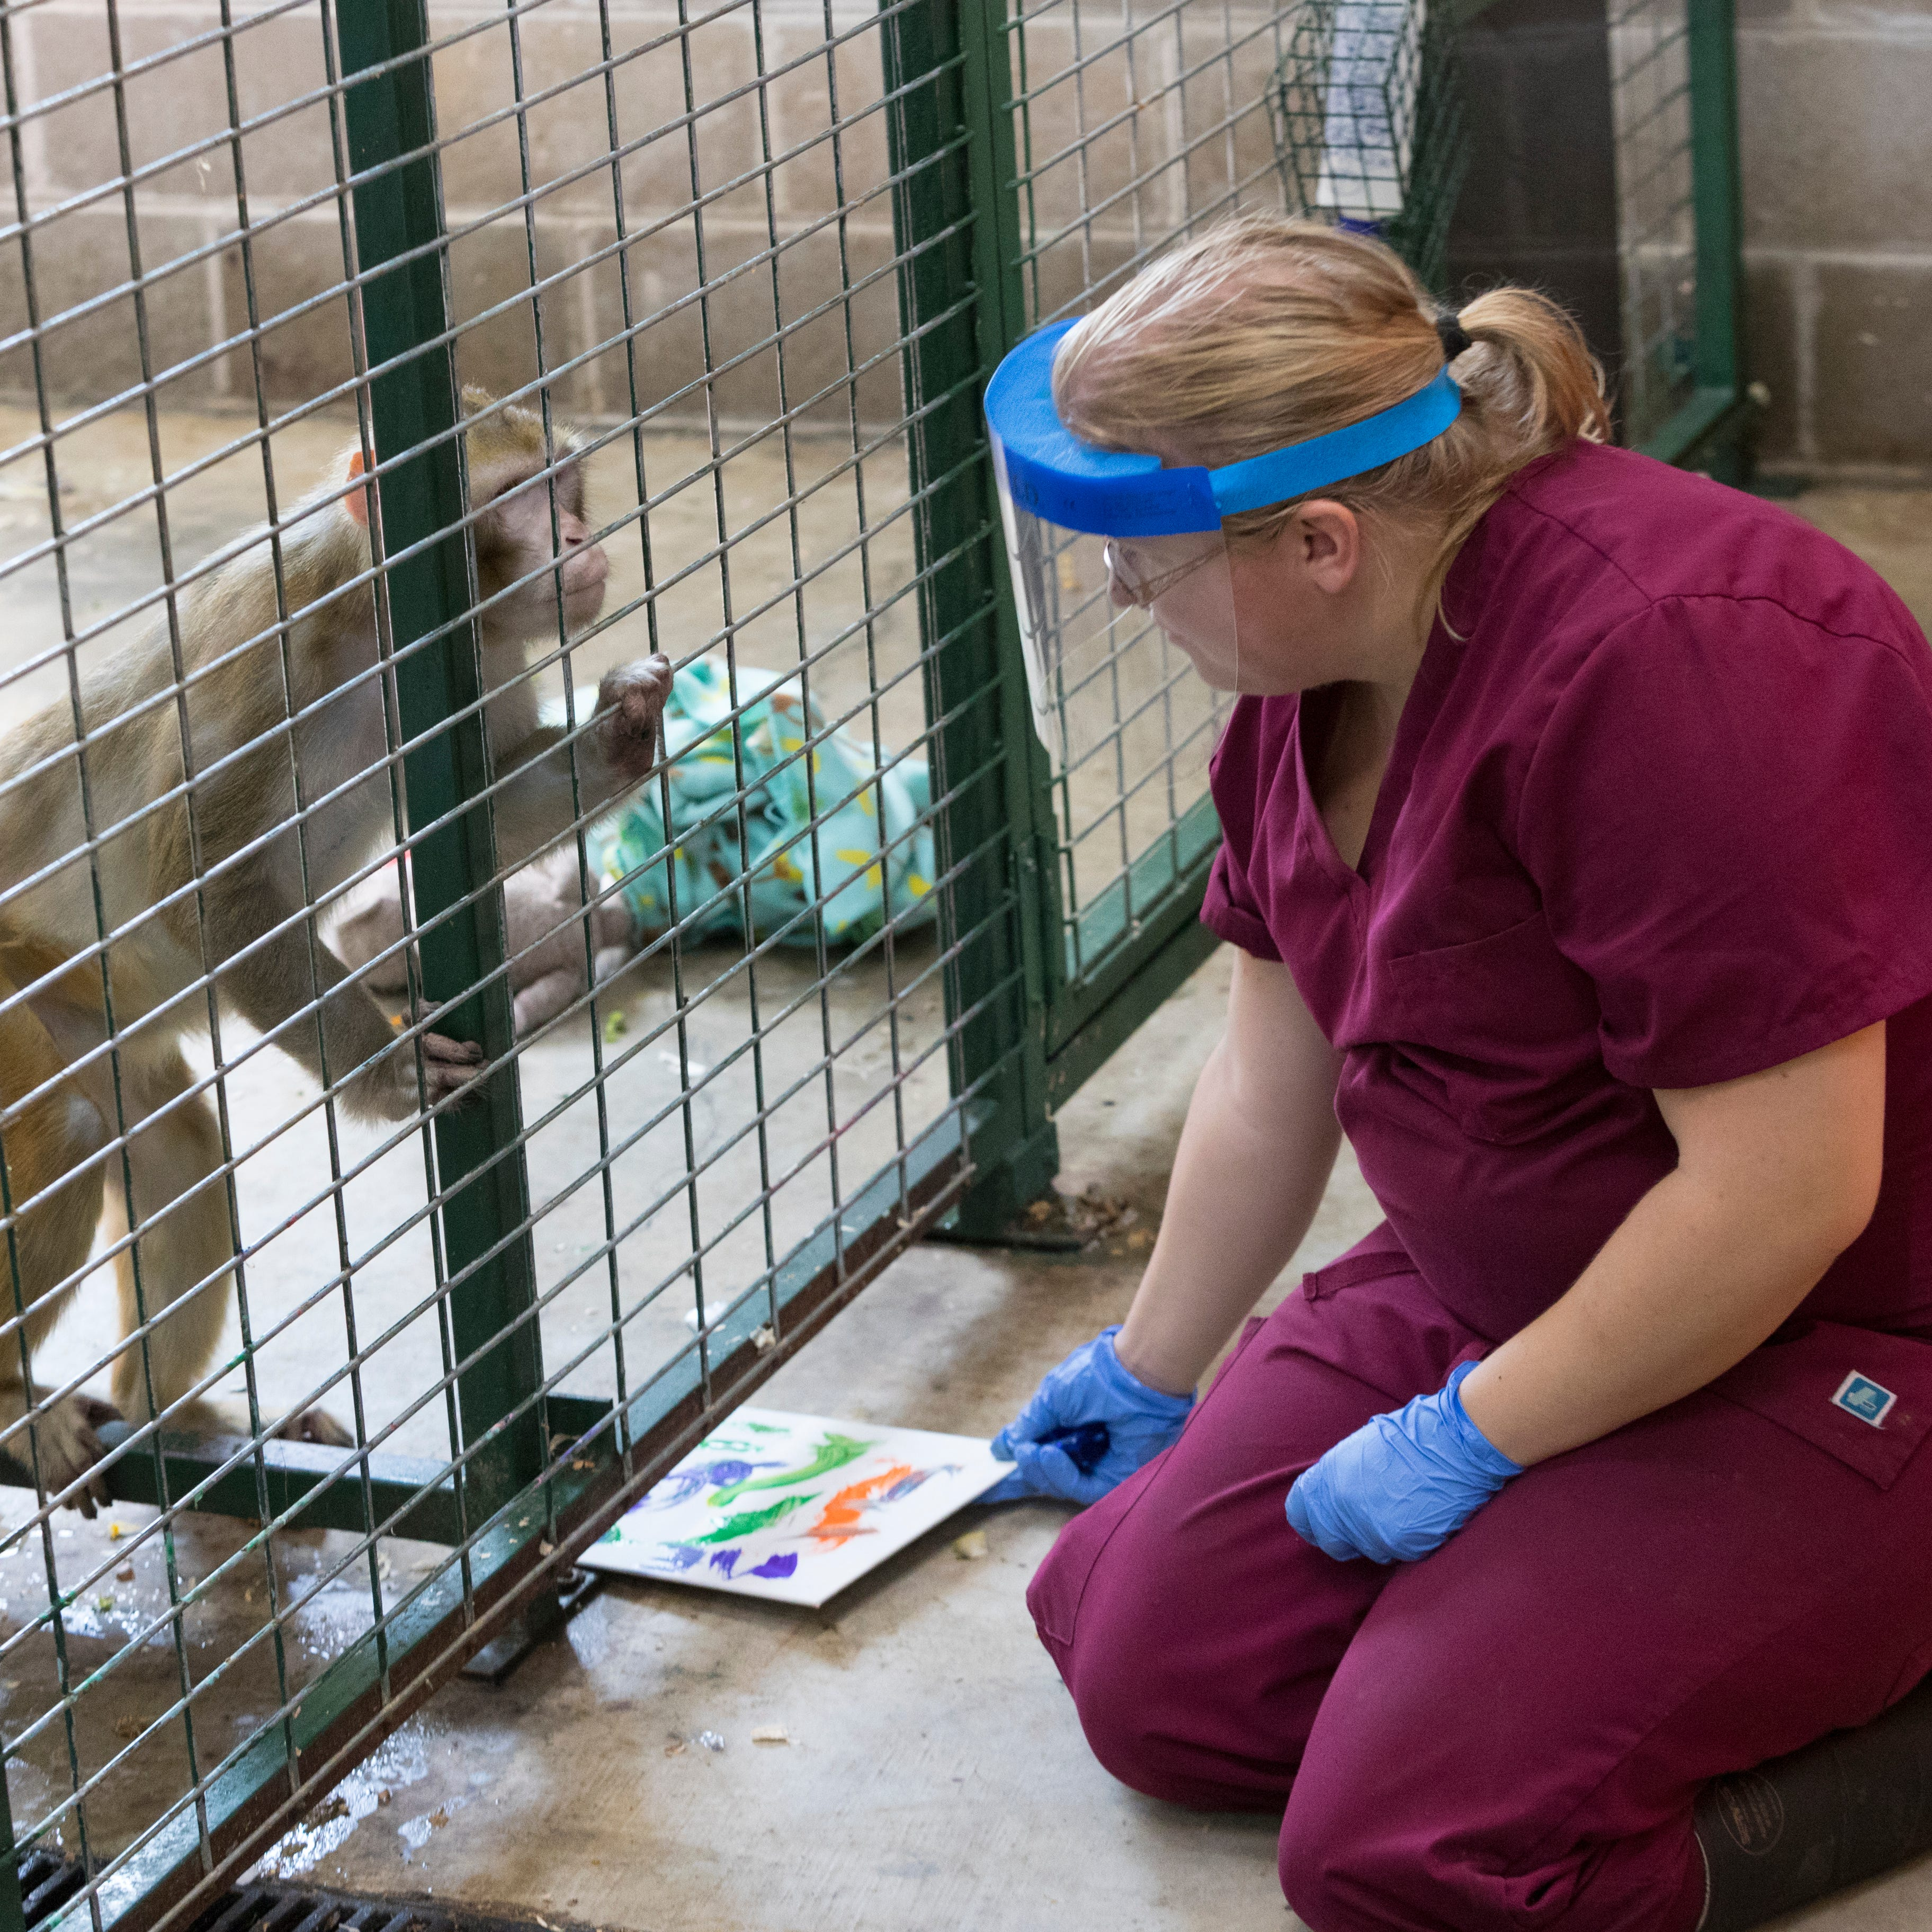 Monkey sanctuary in central Wisconsin is retirement home for primates used for medical research